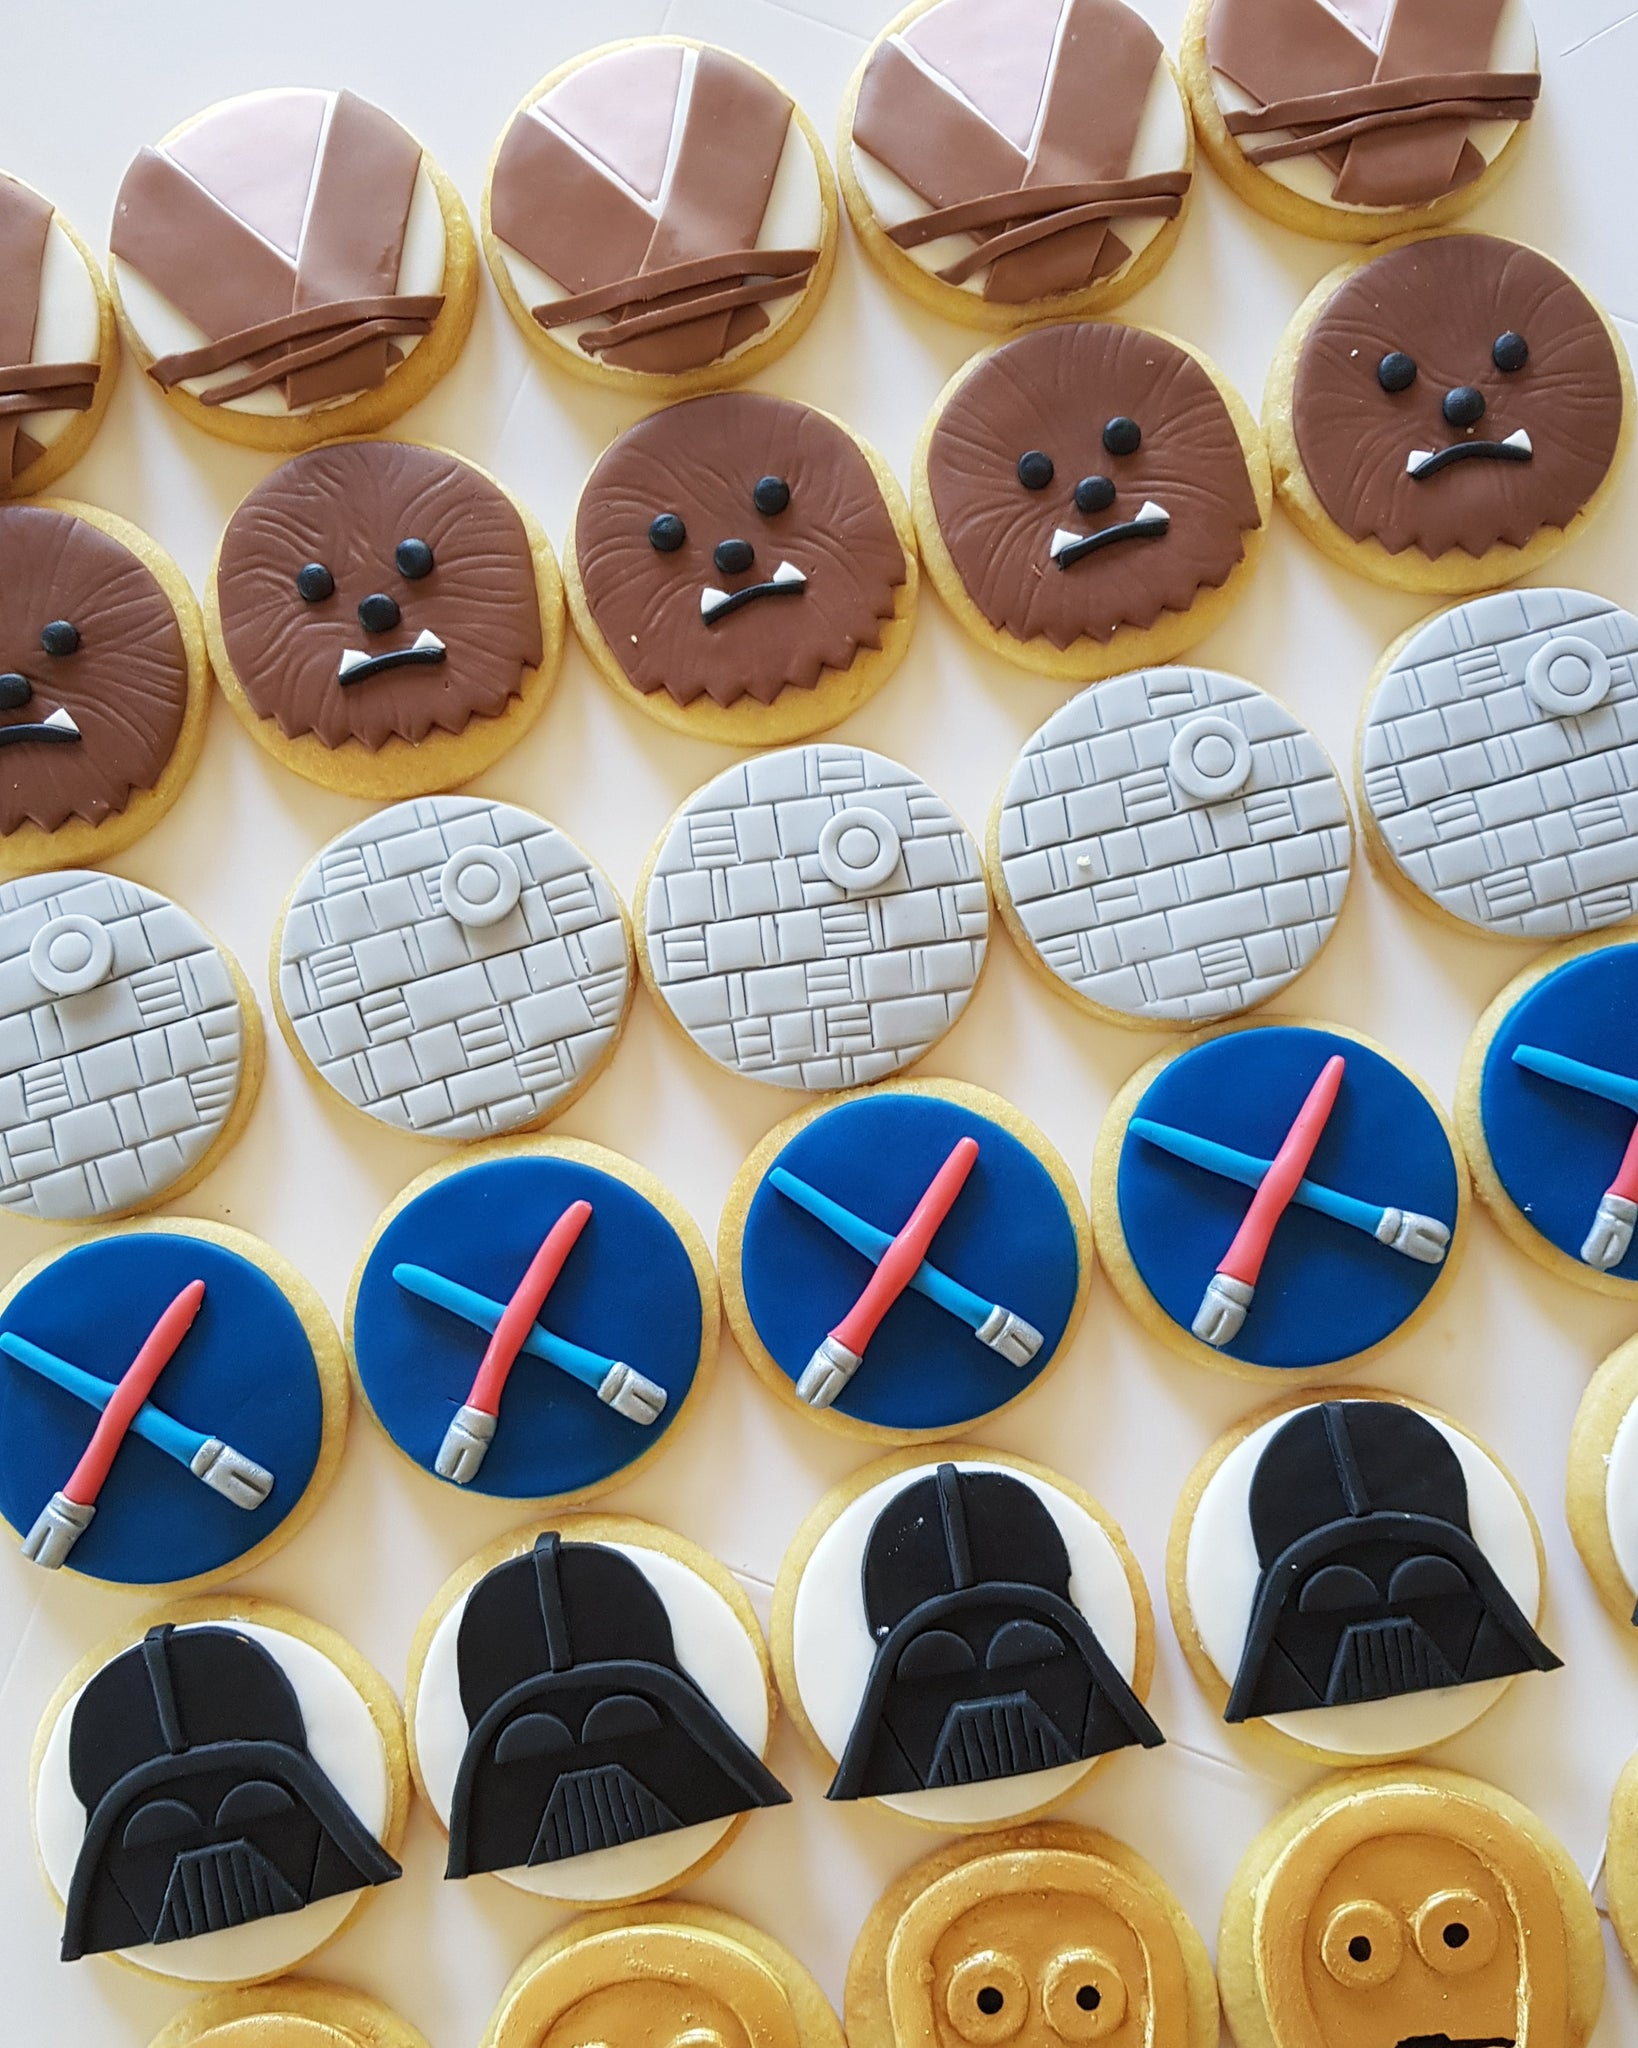 60 detailed fondant cookies